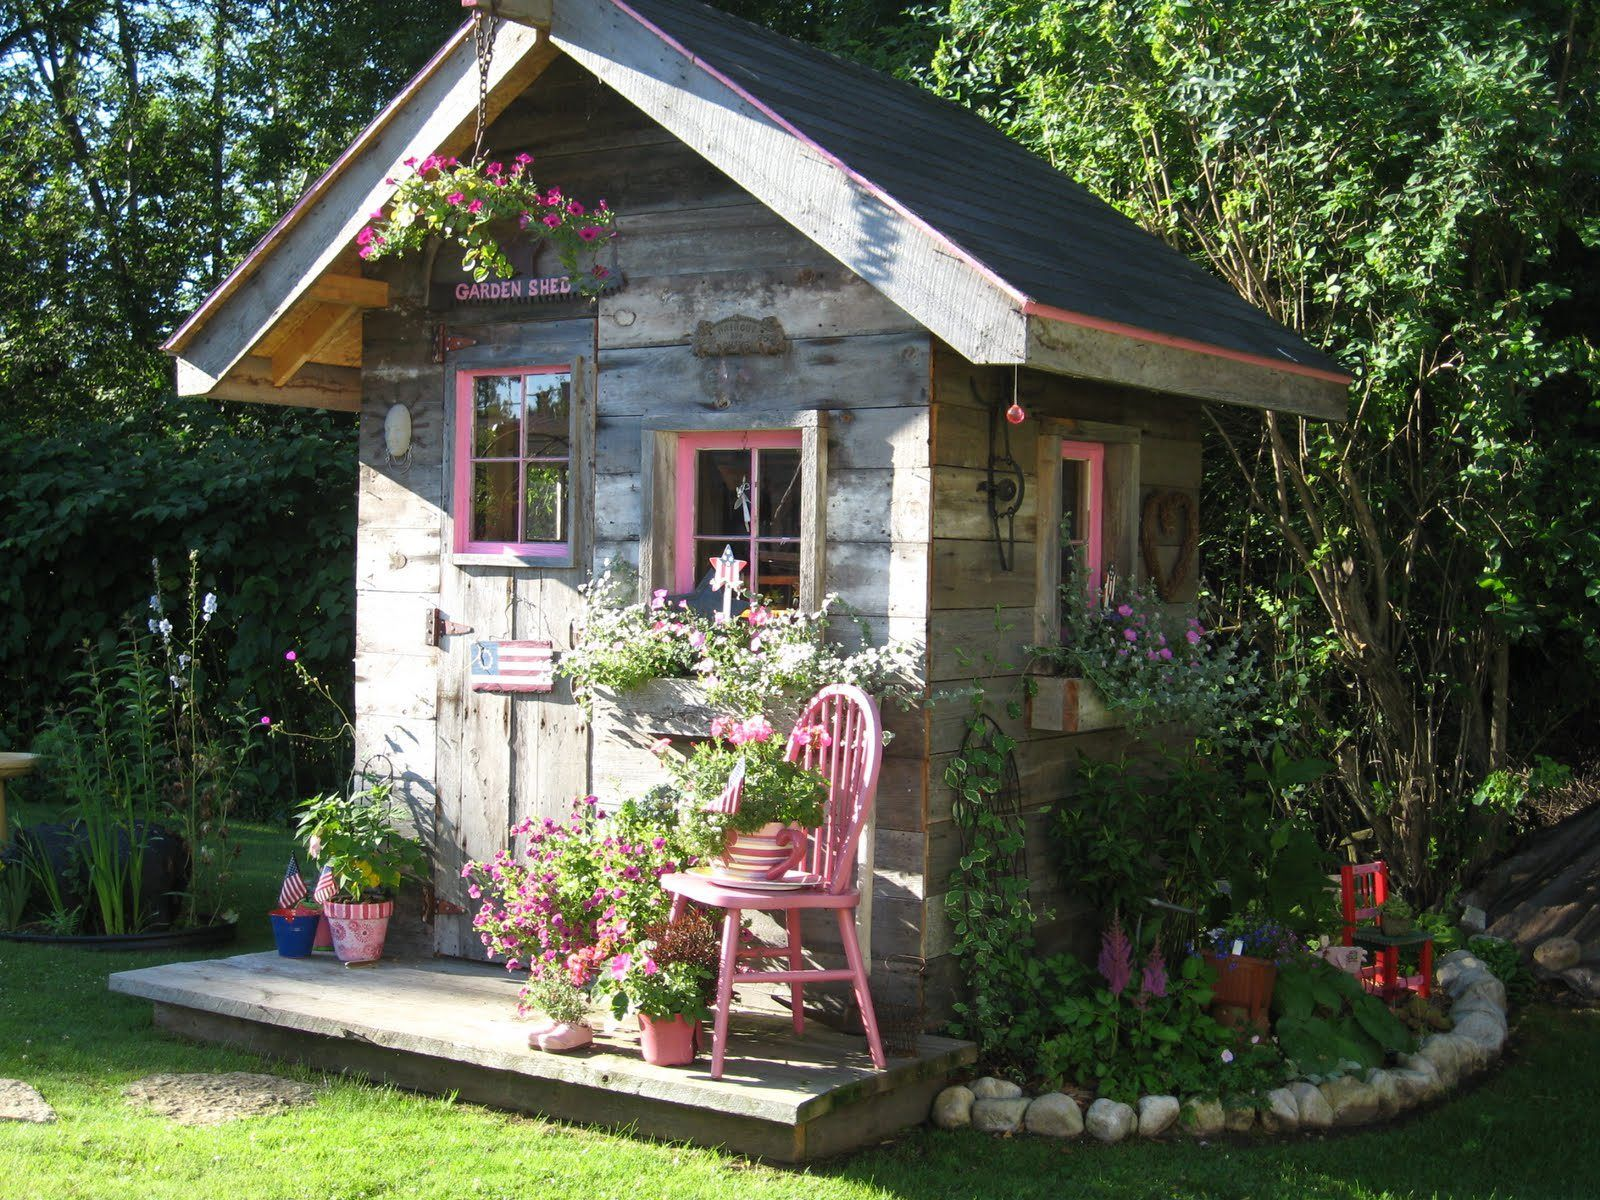 Bijzondere Tuinhuisjes Cute Garden Shed In My Lovely Garden Pinterest